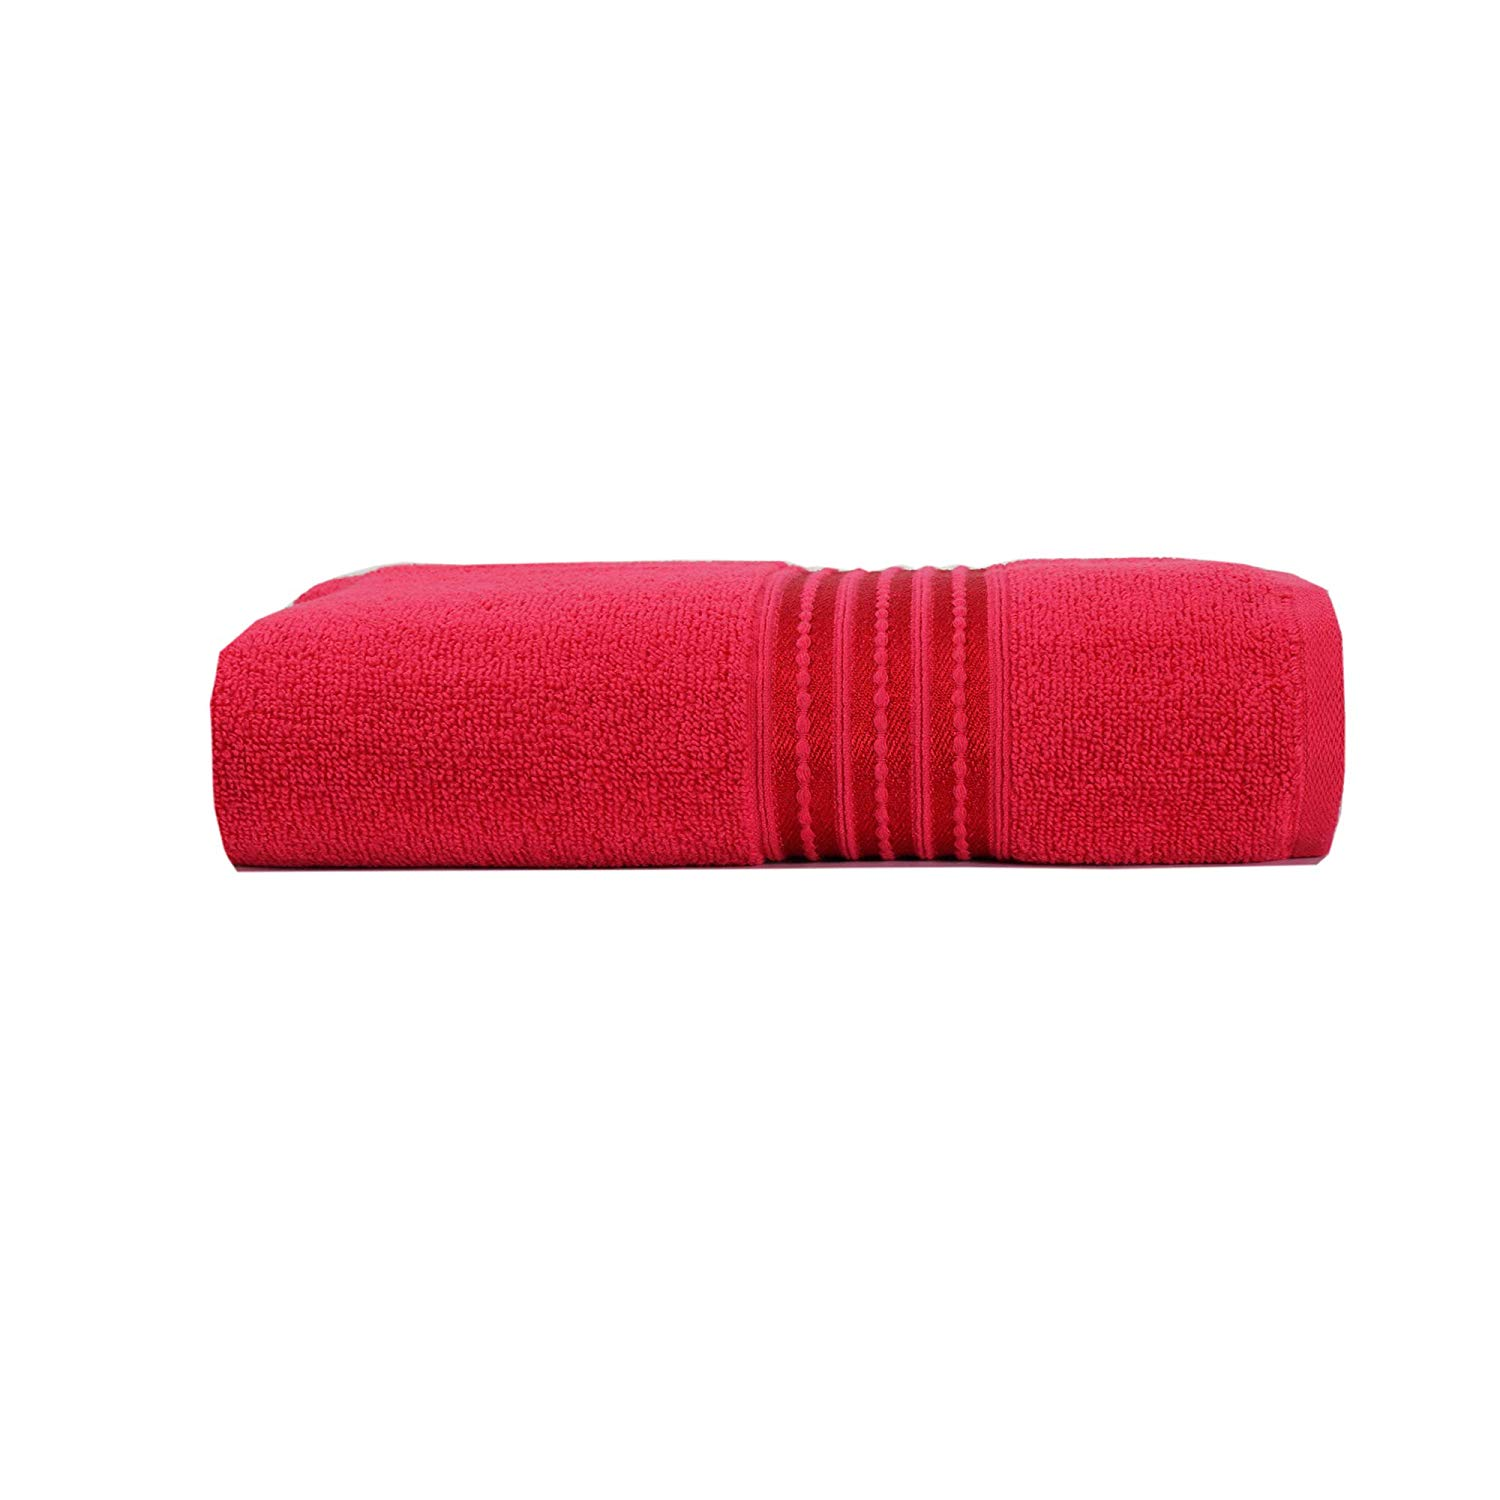 Micro Cotton Remy Basel 100% Cotton Red Bath Towel (Red)